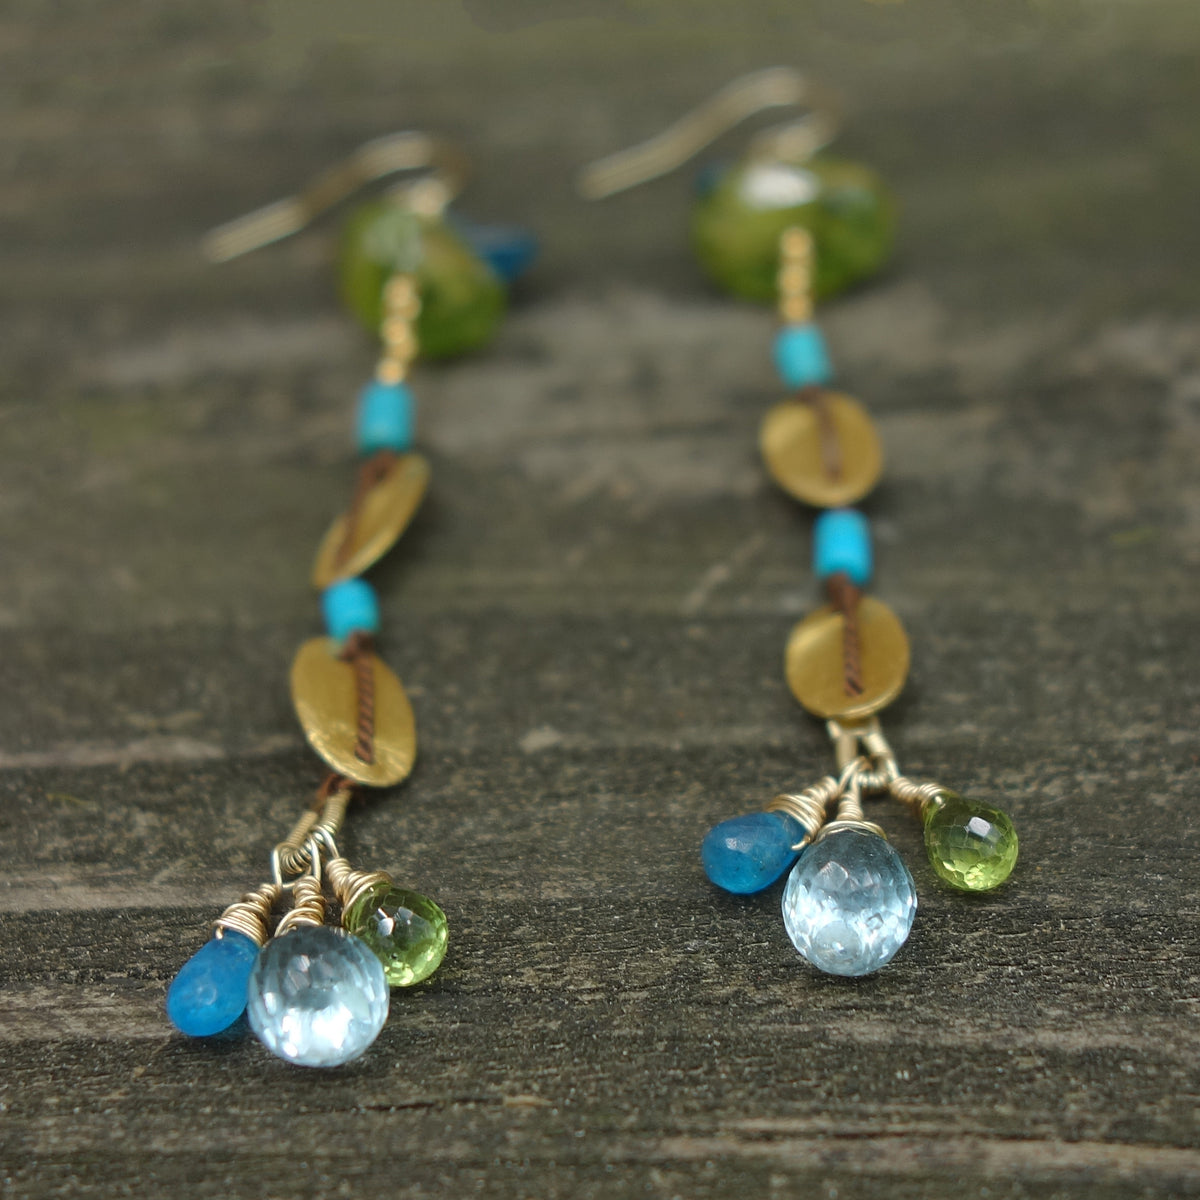 Fearless: apatite, peridot, turquoise, gold